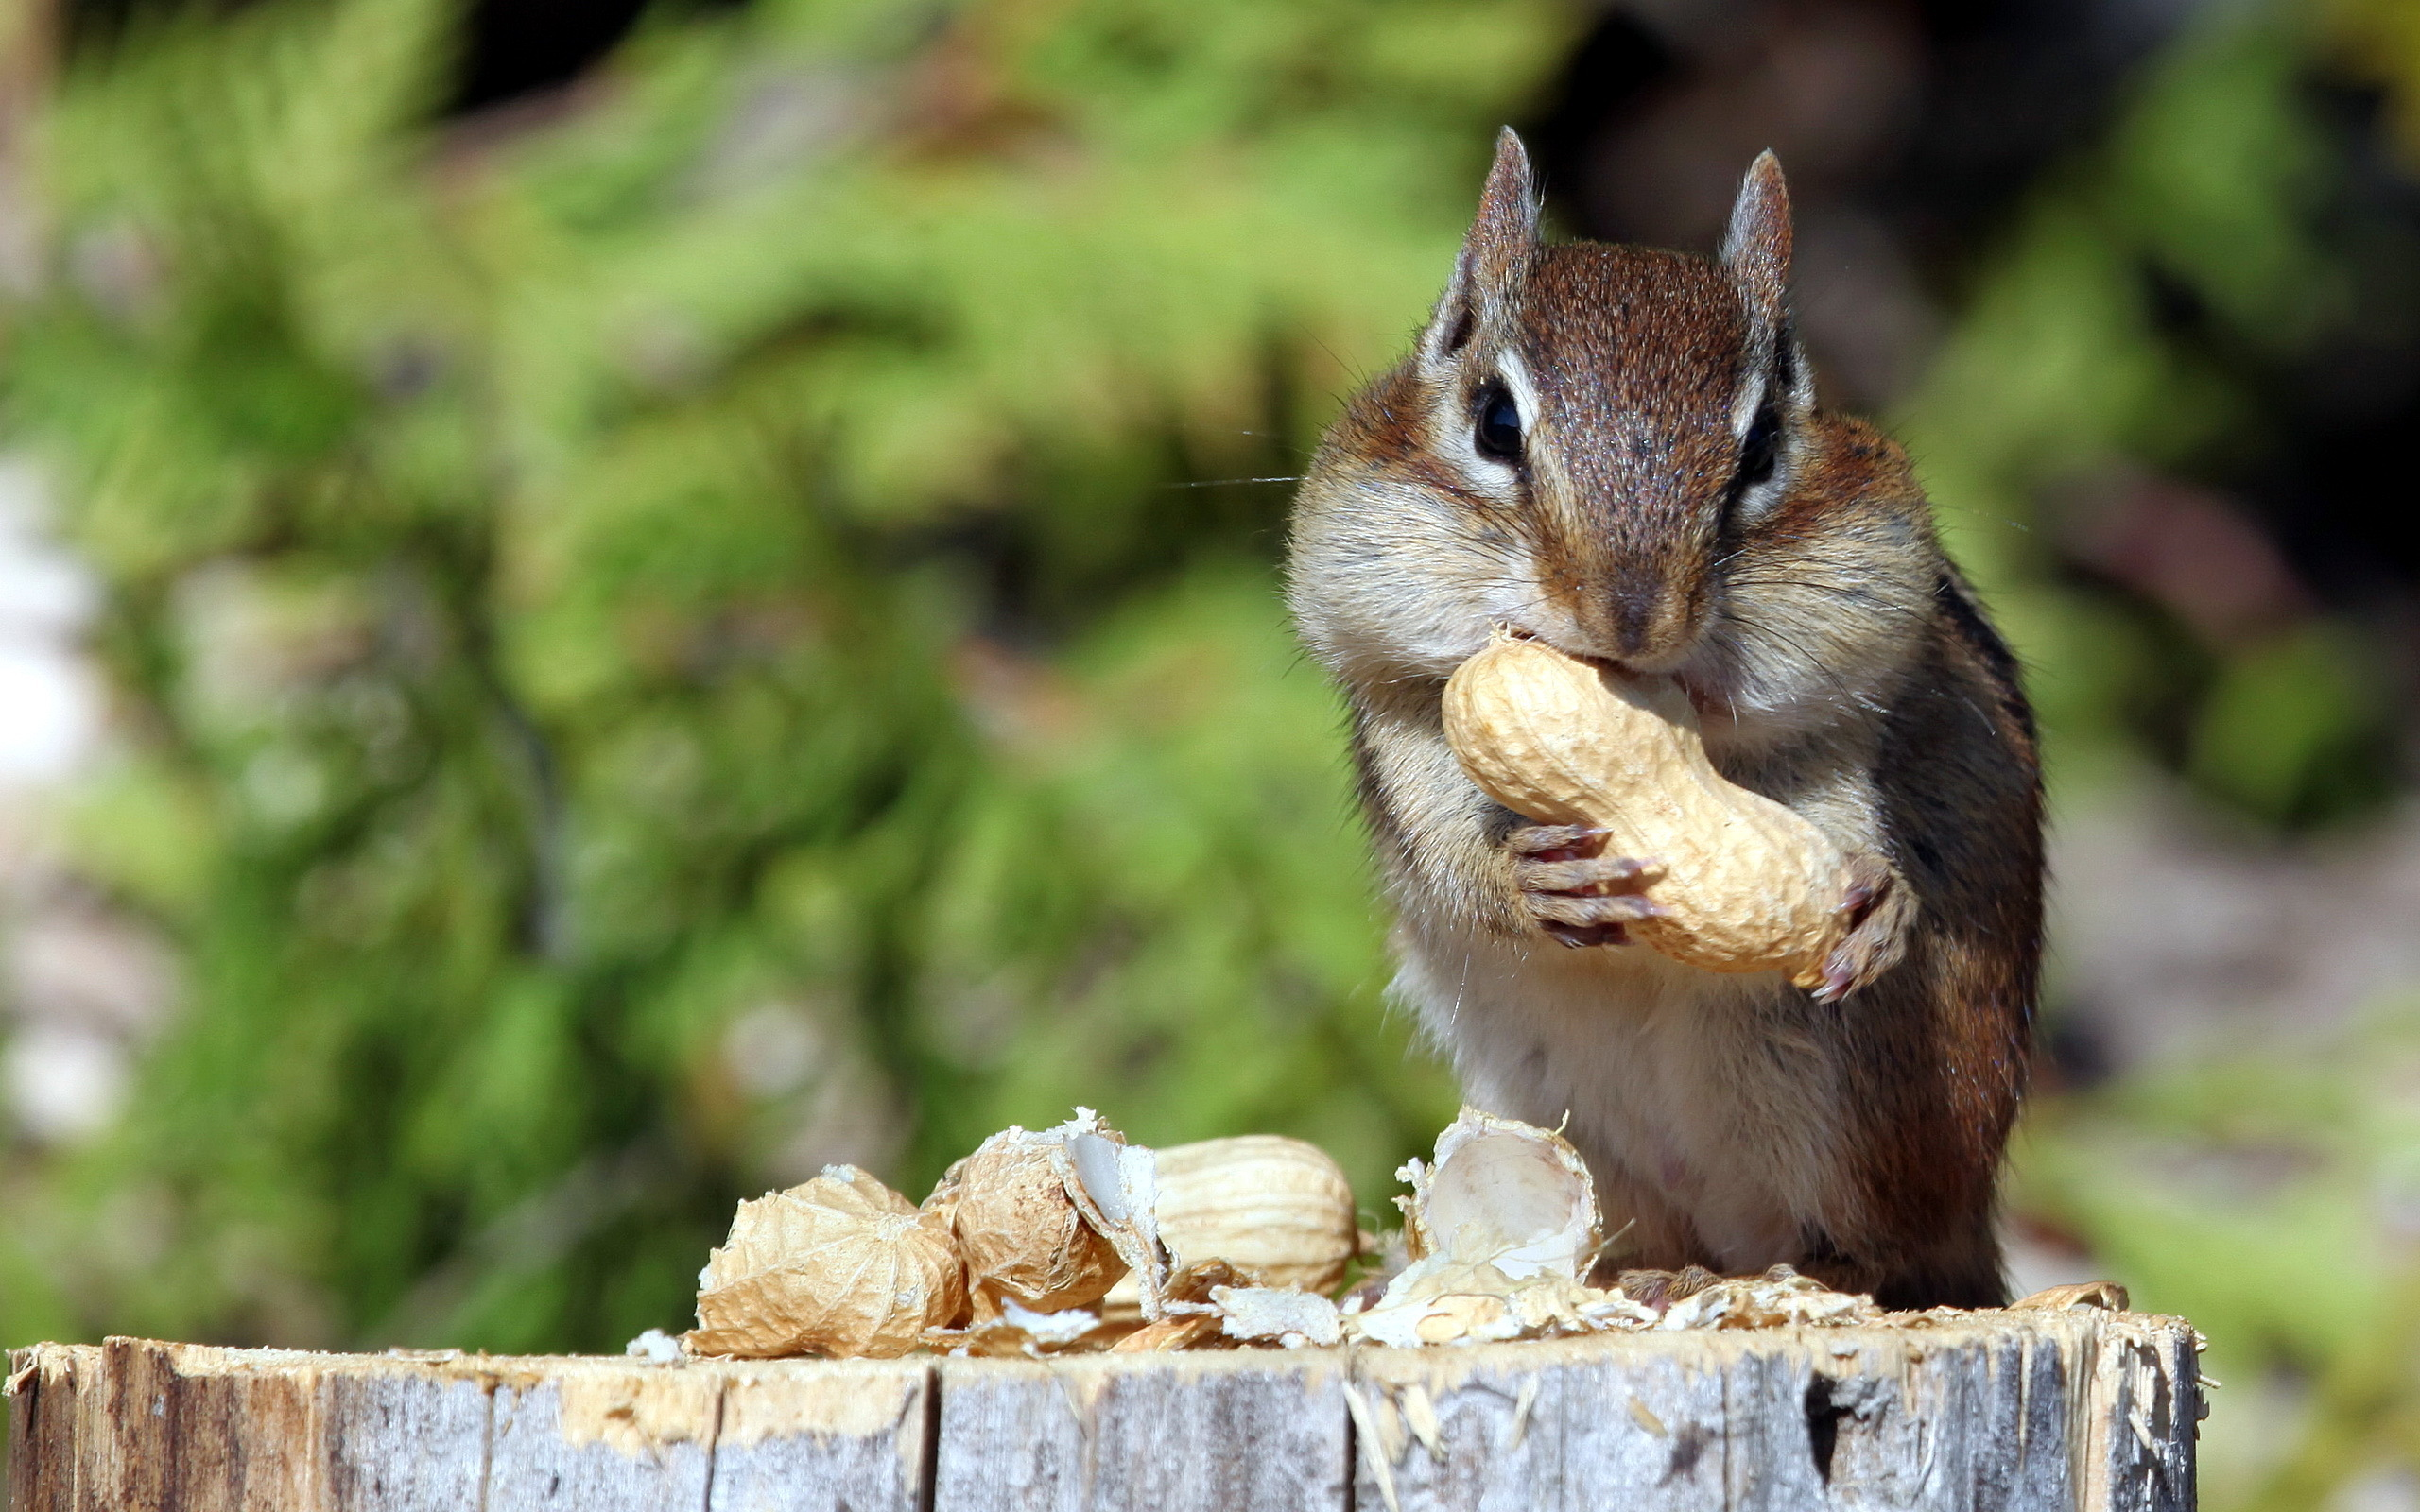 Funny images of squirrels hd desktop wallpapers 4k hd - Funny squirrel backgrounds ...